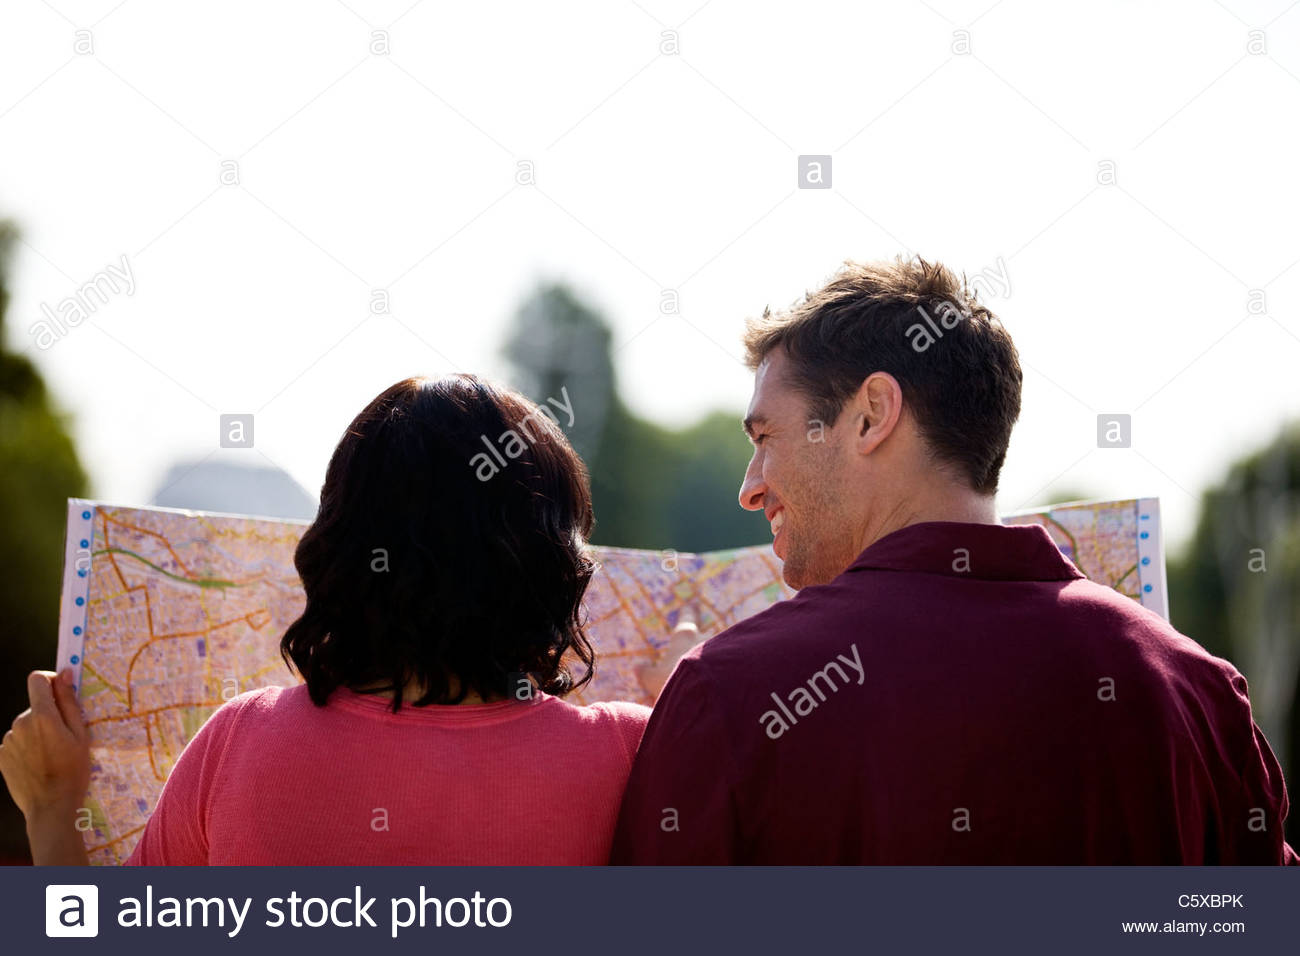 A young couple looking at a map of London - Stock Image